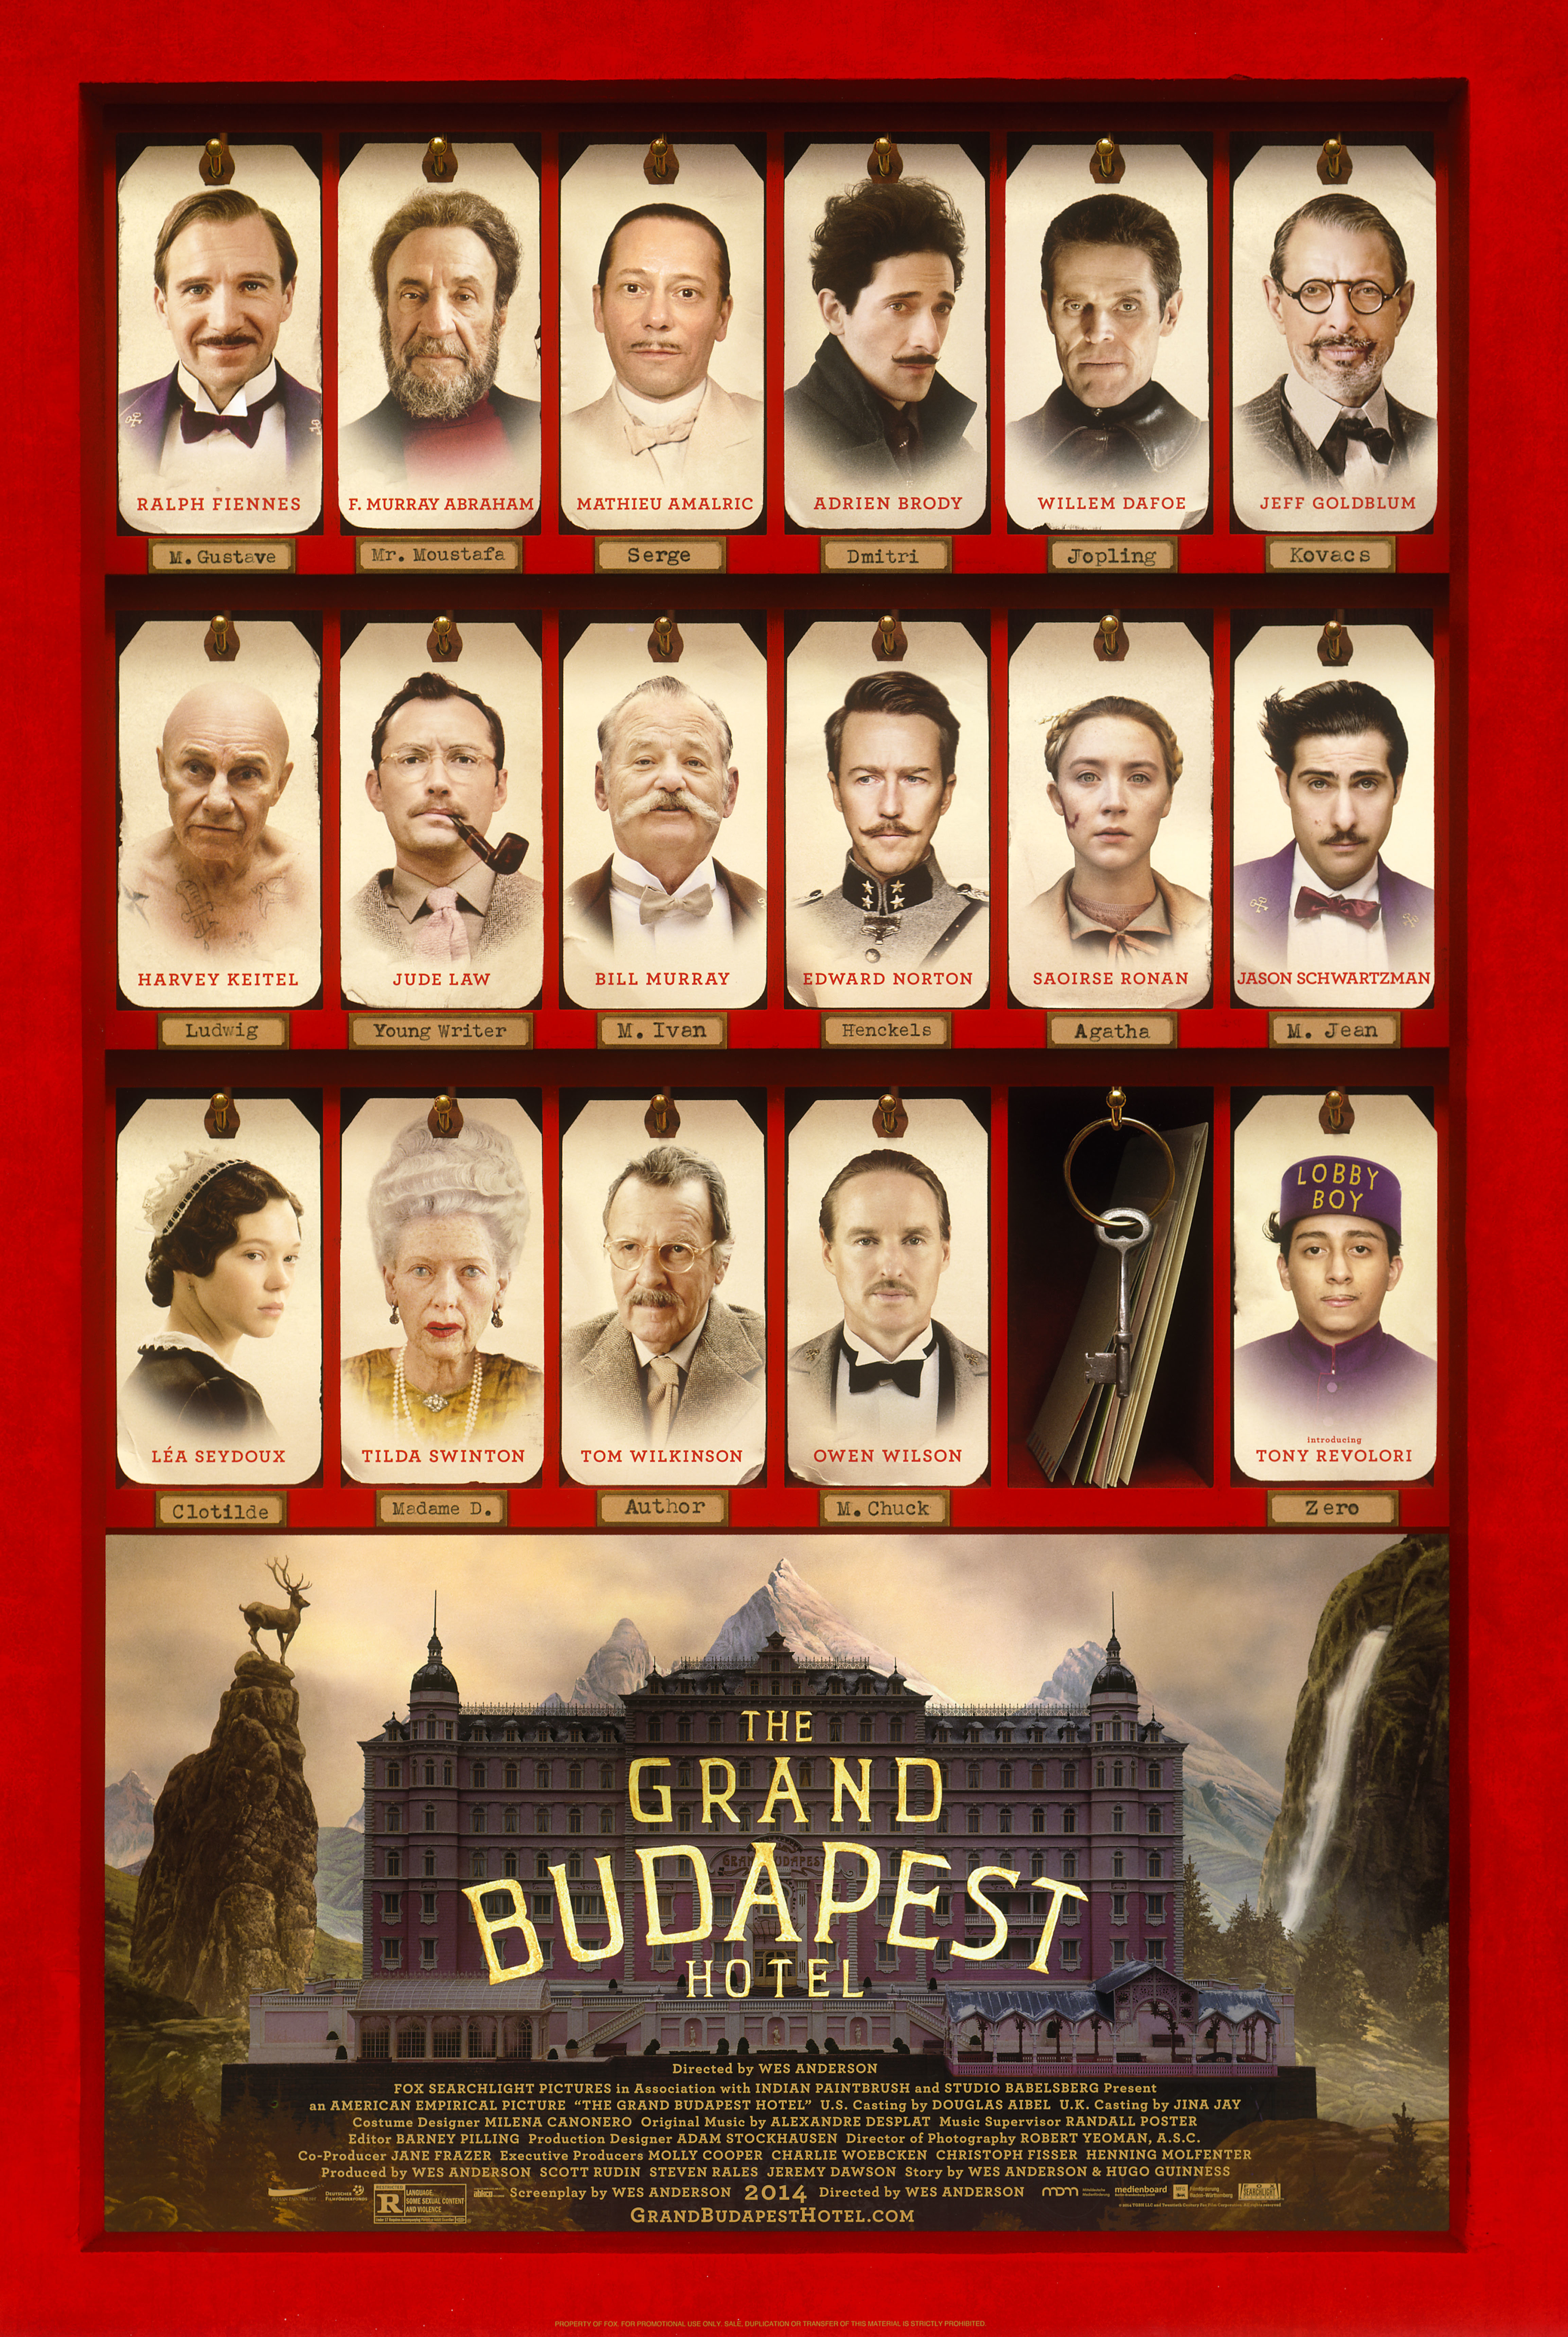 the grand budapest hotel gets 9 nominations including best